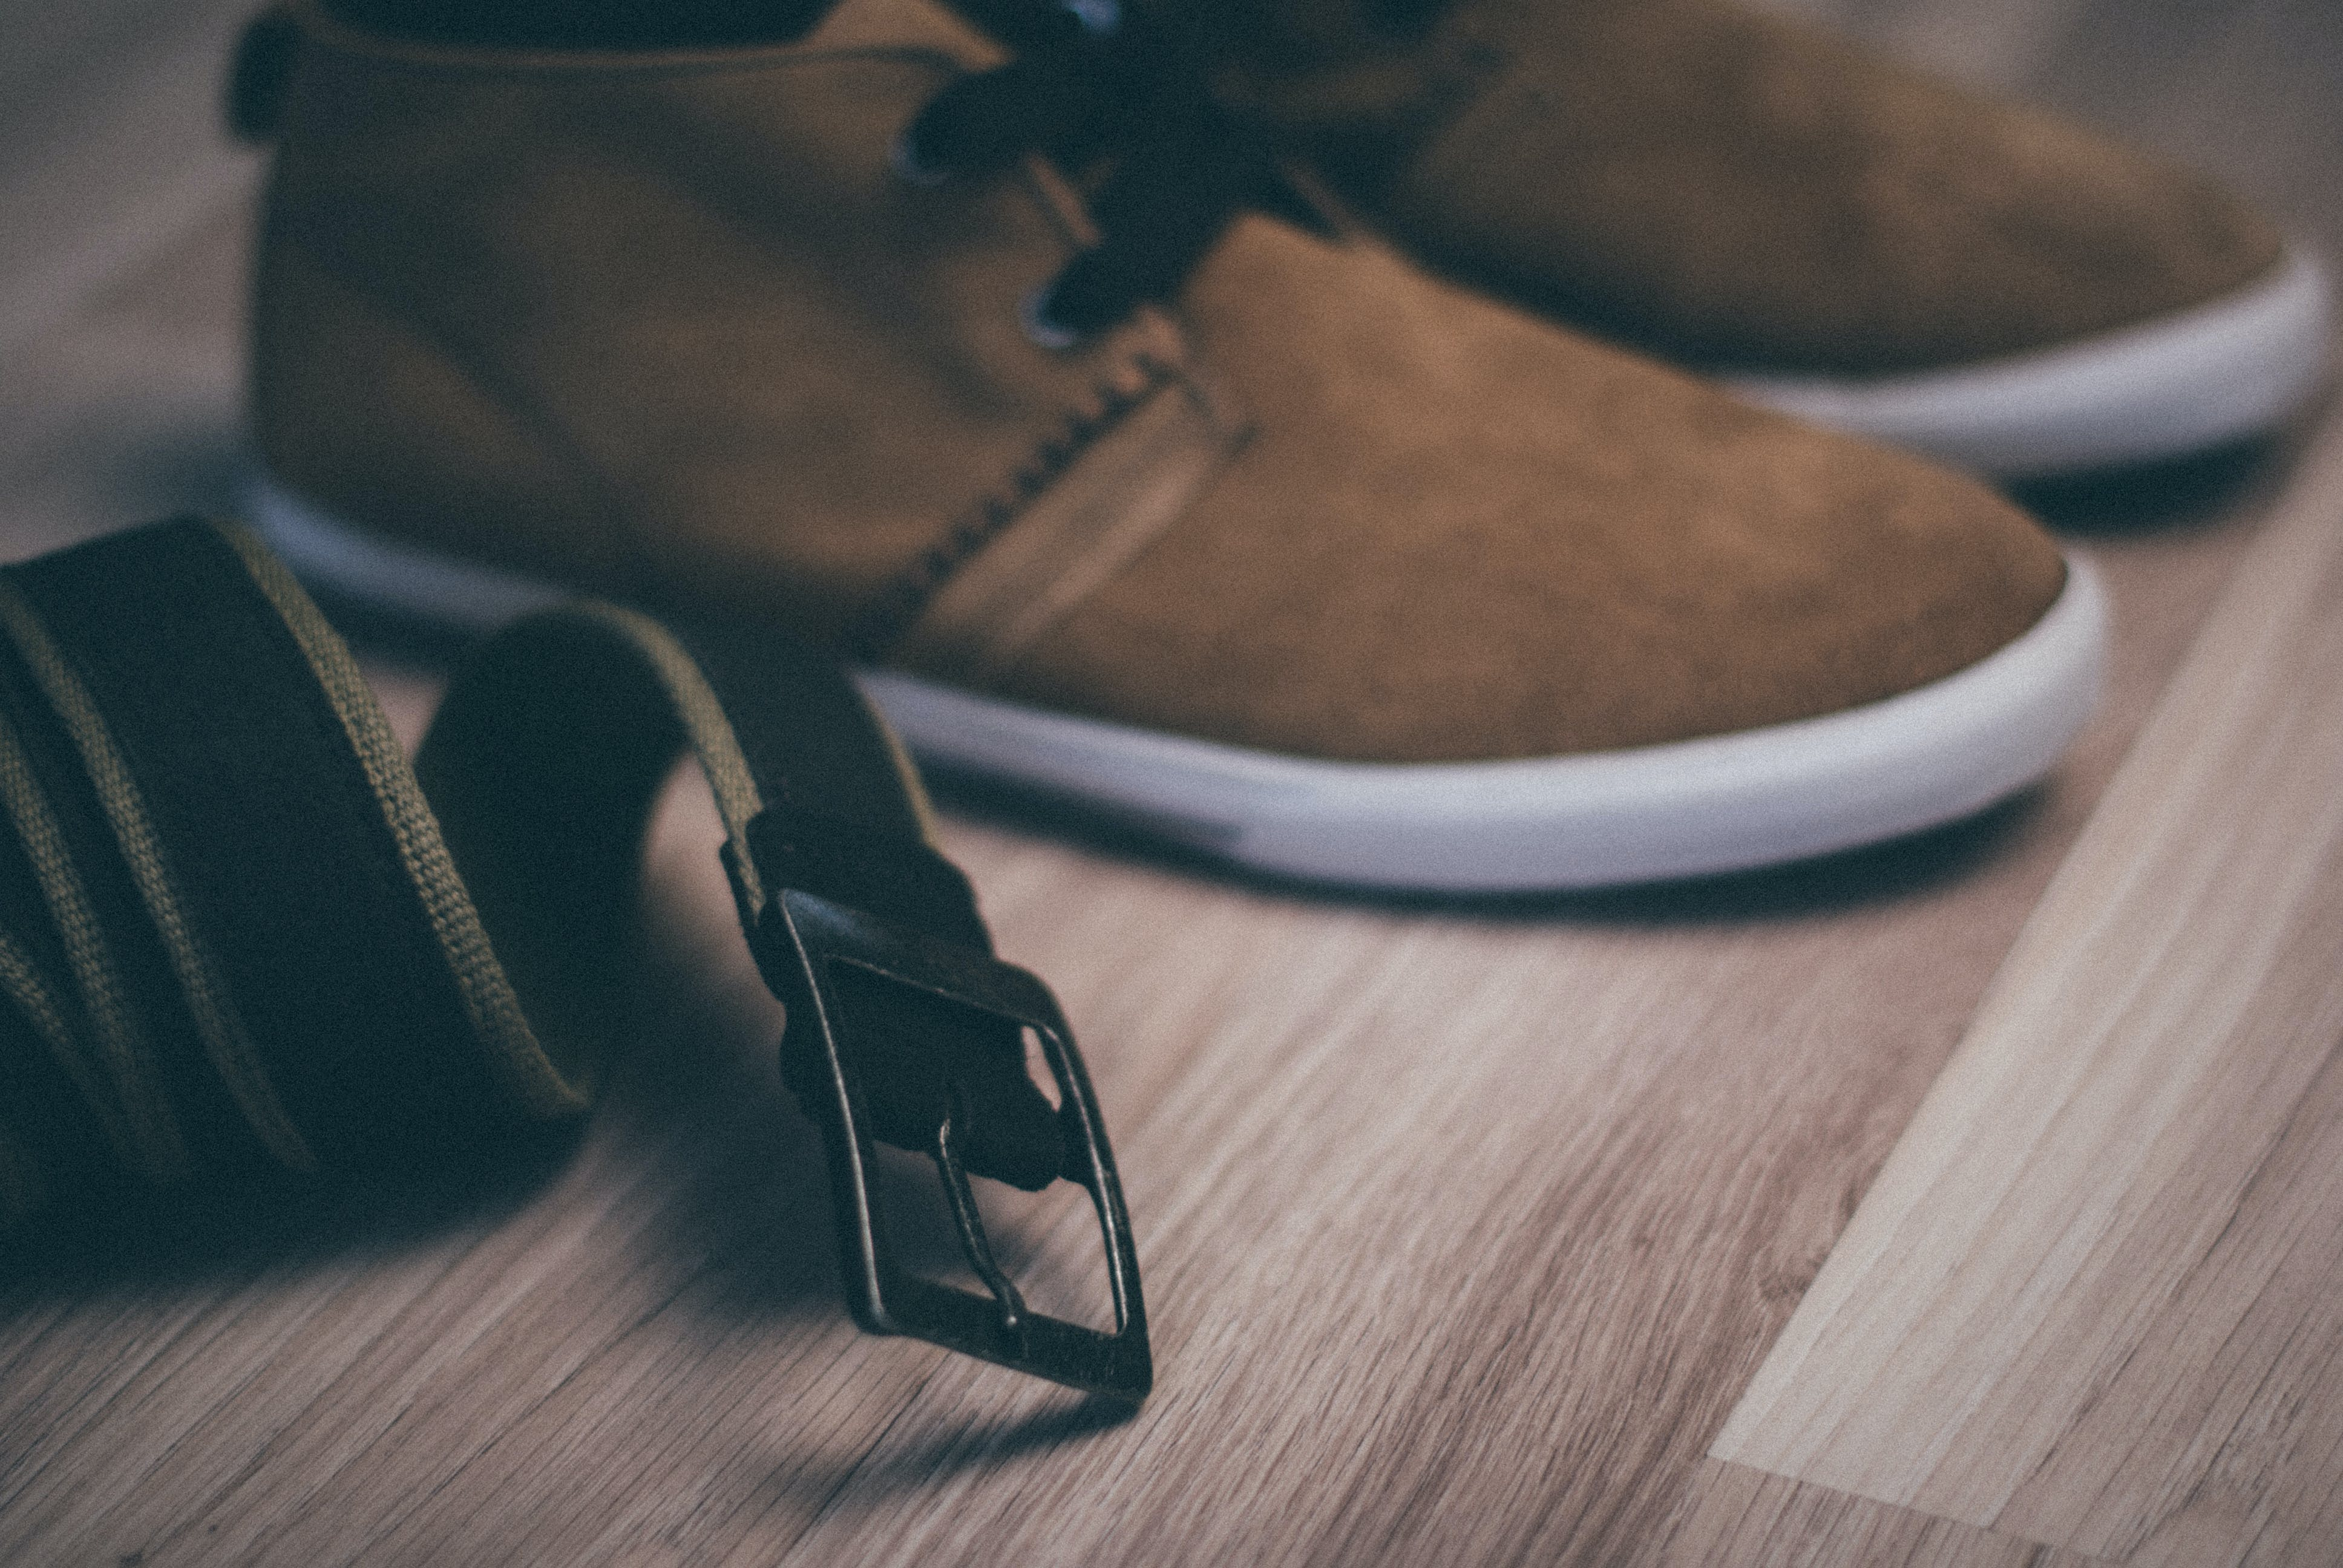 Pair of Brown Leather Sneakers and Black Leather Belt